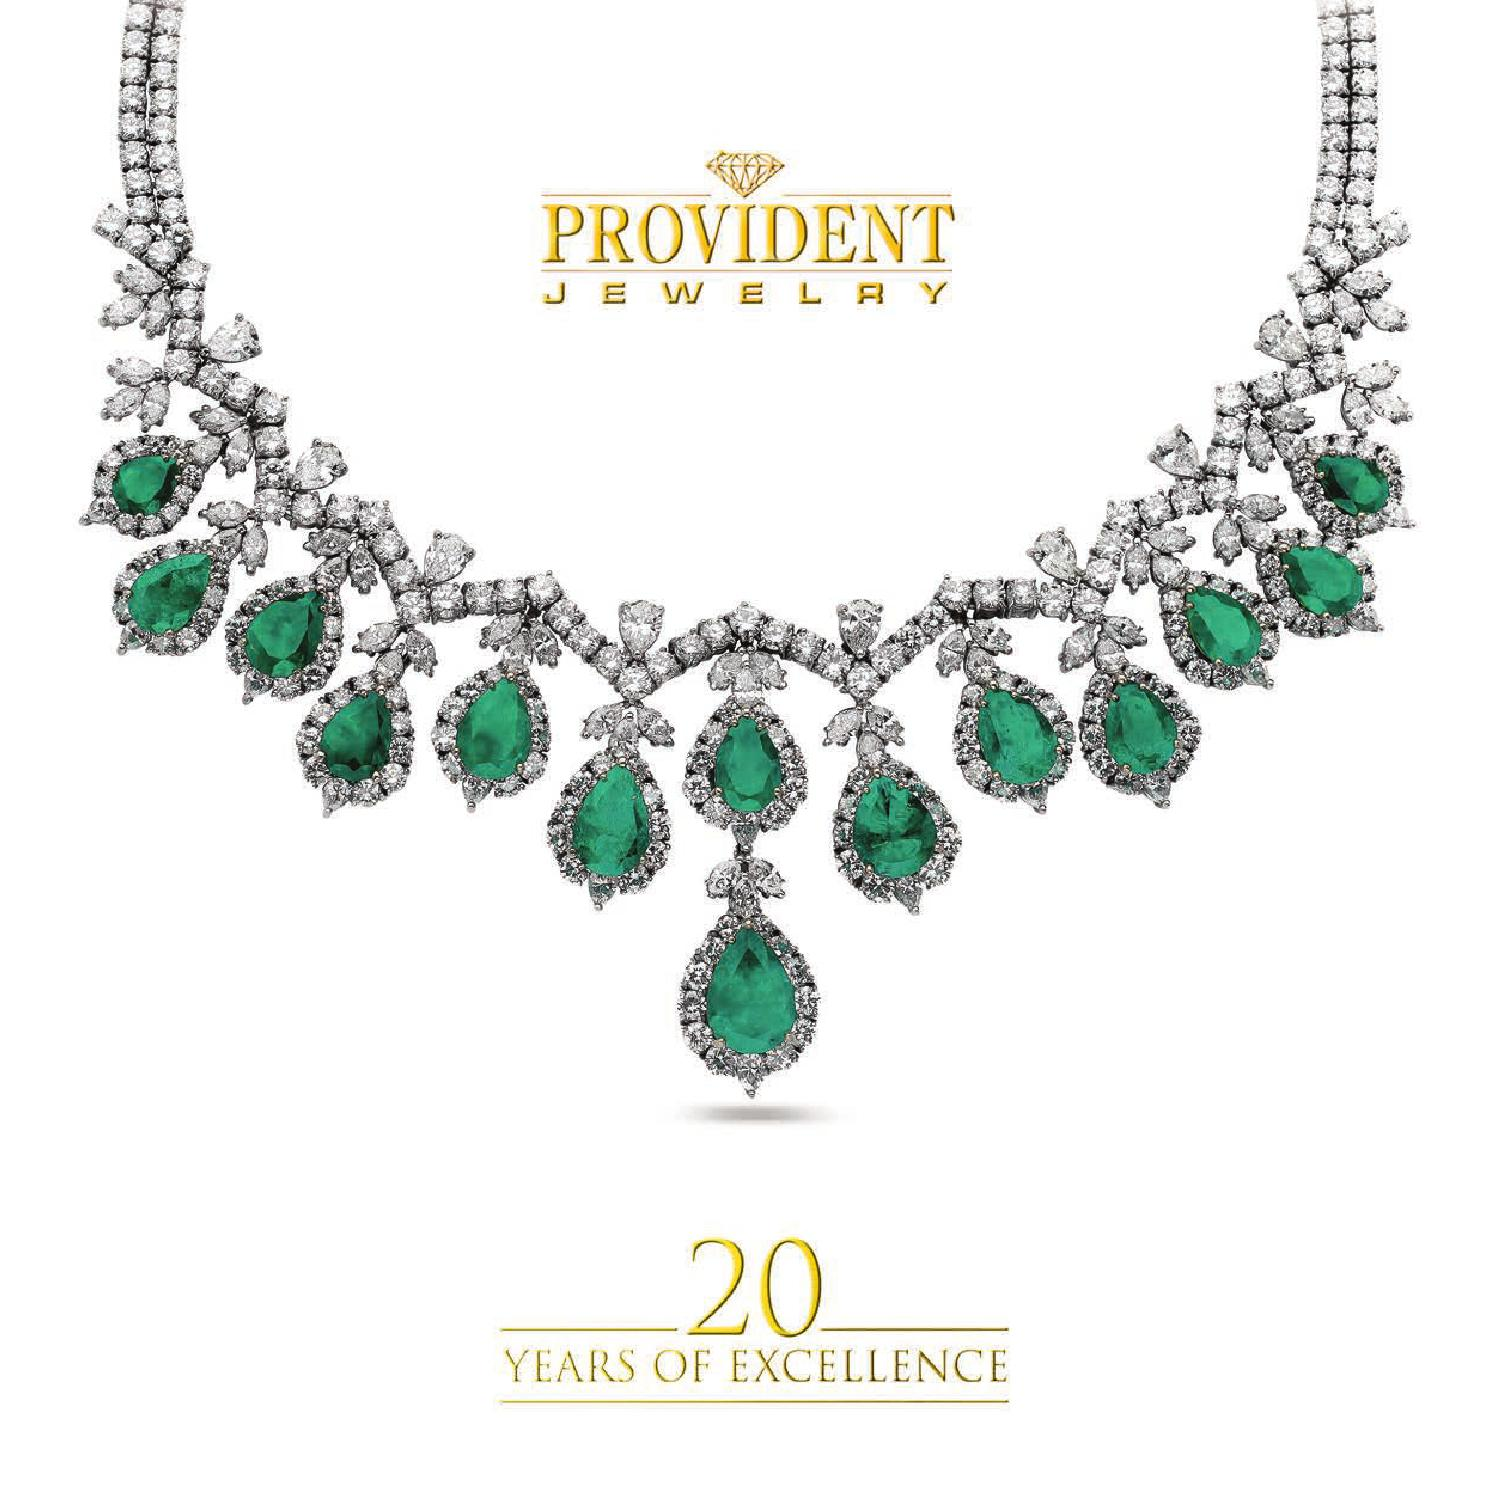 Provident Jewelry Catalog 2014 By Palm Beach Show Group